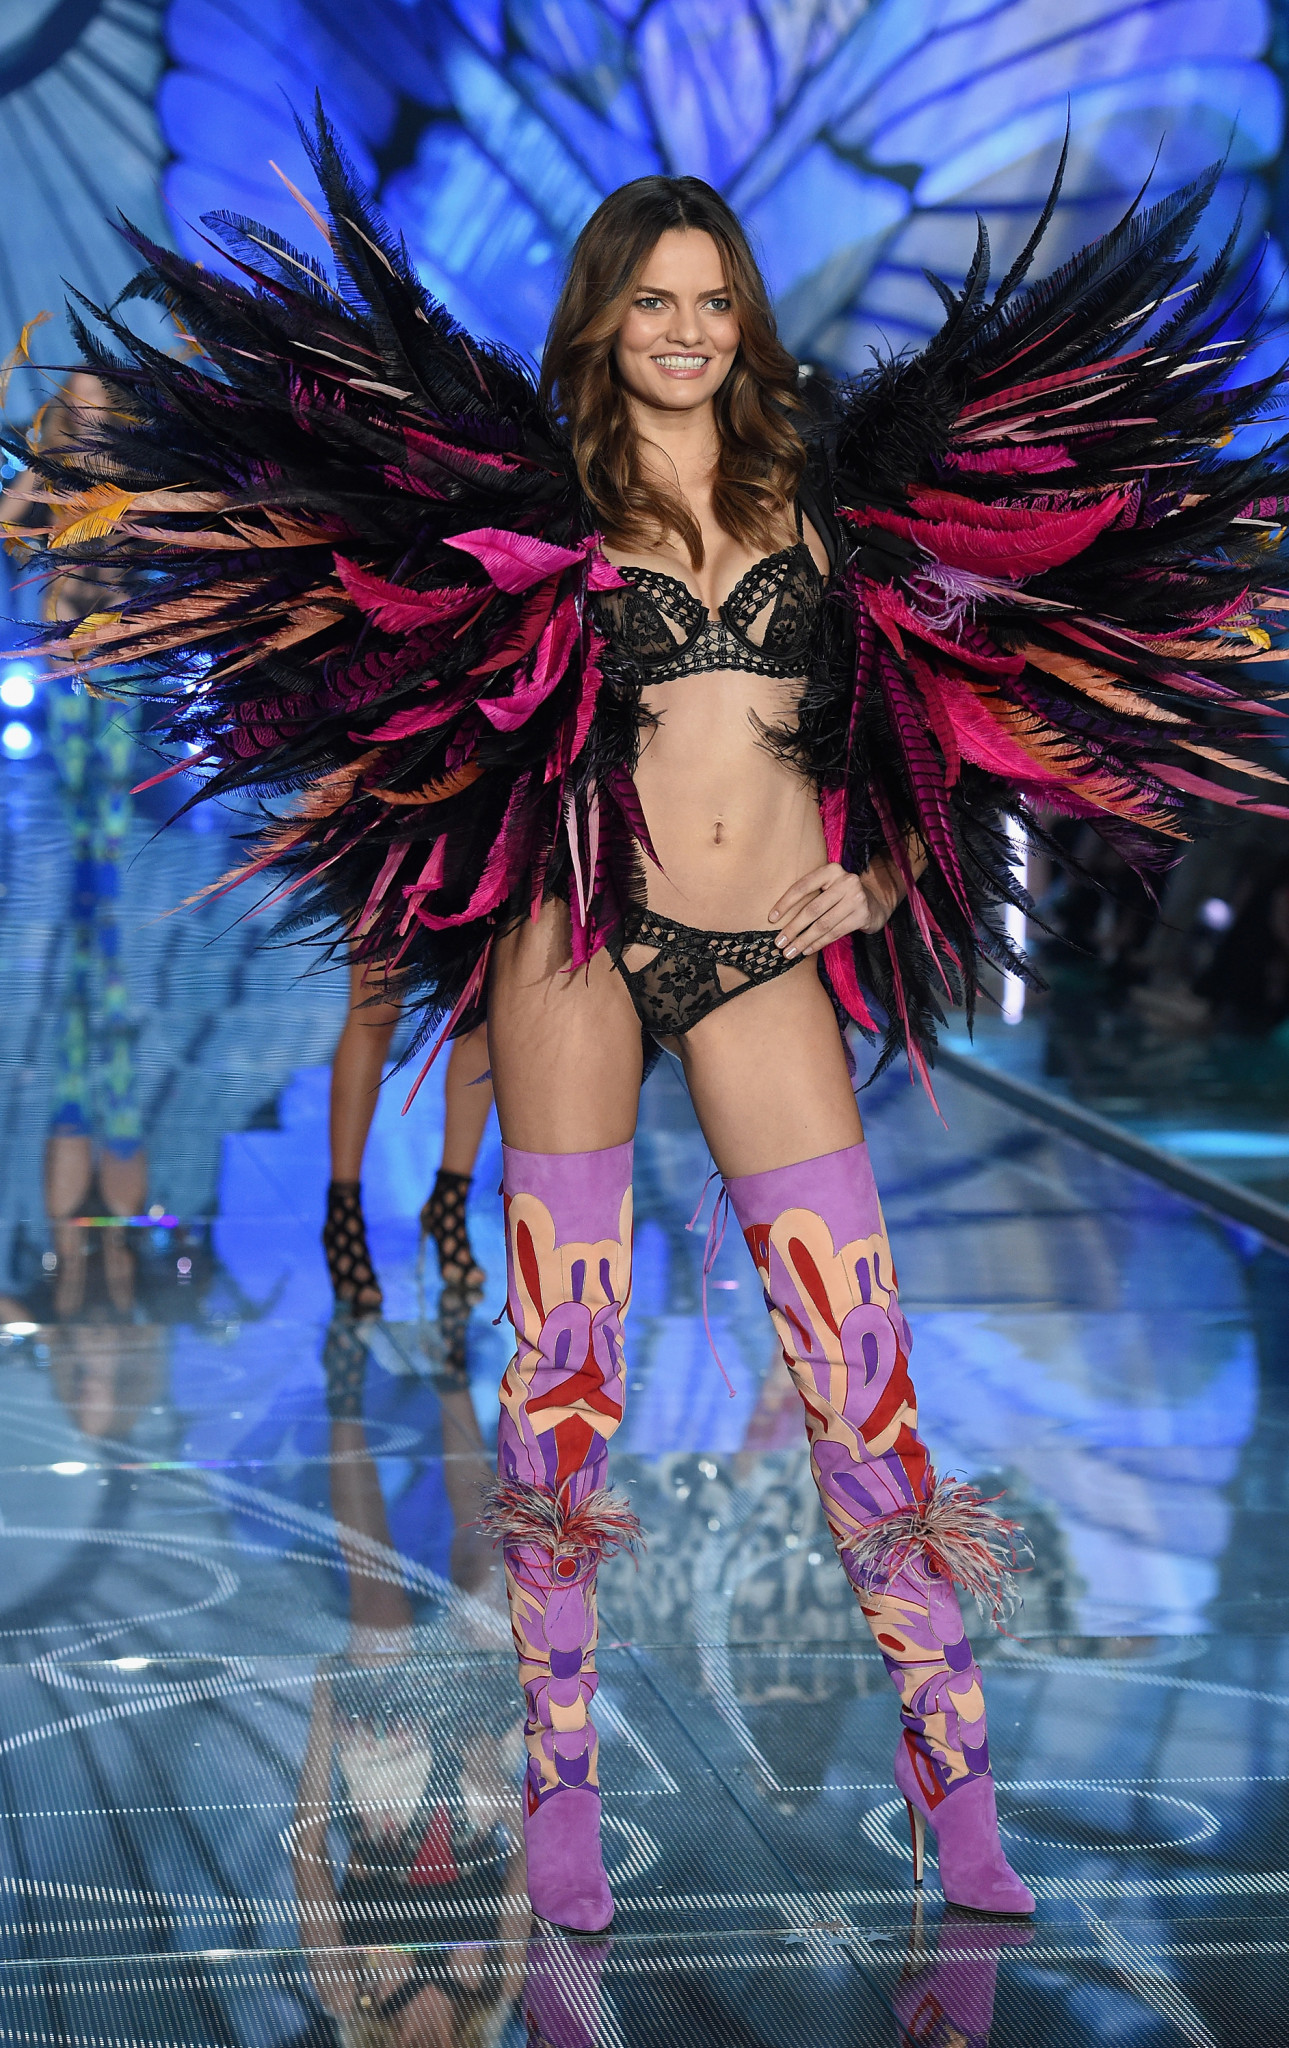 NEW YORK, NY - NOVEMBER 10: Model Valery Kaufman from Russia walks the runway during the 2015 Victoria's Secret Fashion Show at Lexington Avenue Armory on November 10, 2015 in New York City. (Photo by Dimitrios Kambouris/Getty Images for Victoria's Secret) *** Local Caption *** Valery Kaufman